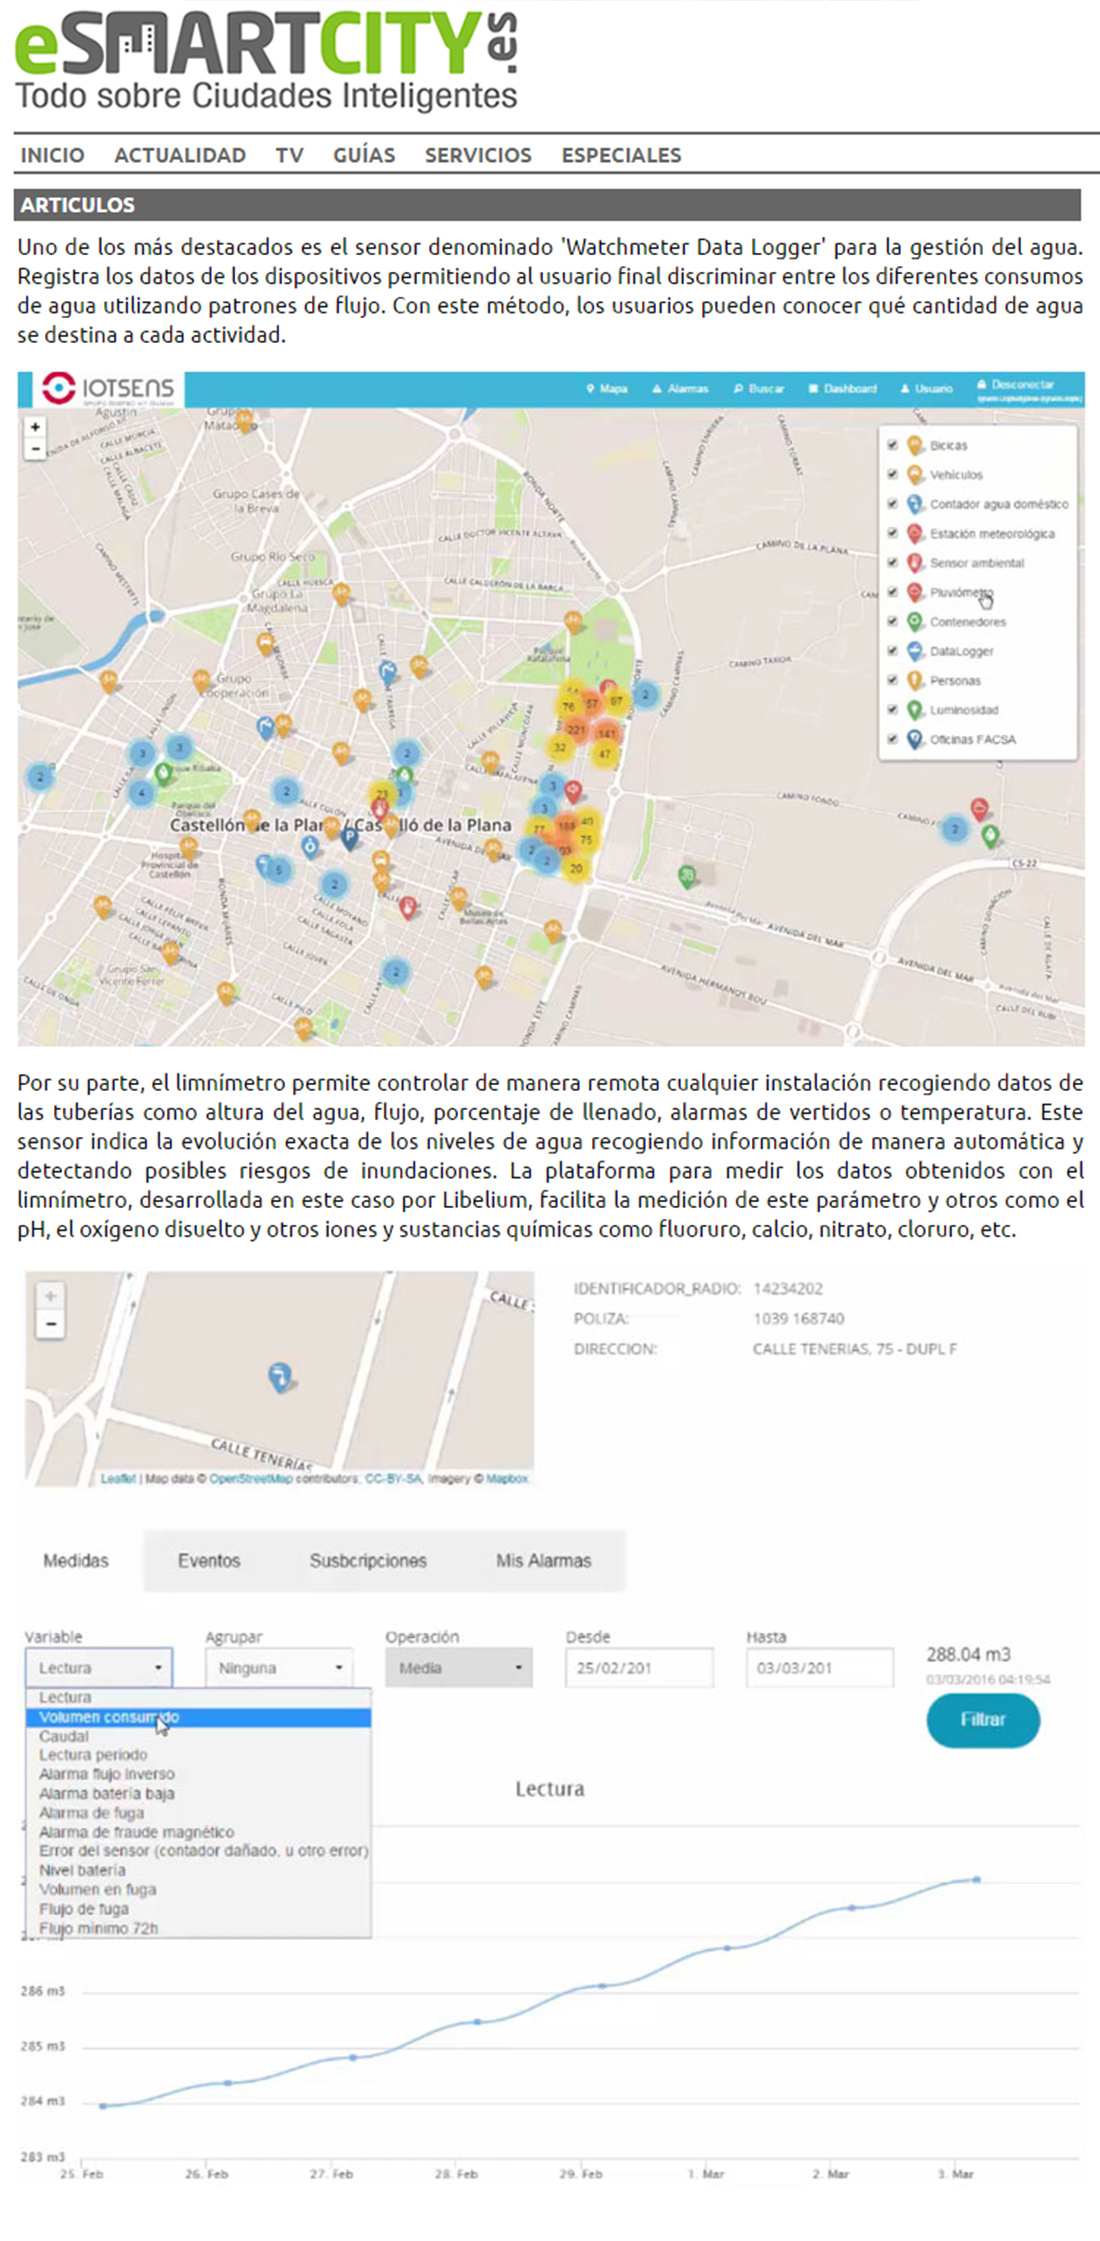 Esmartcity.es – El laboratorio Smart City de Castellón